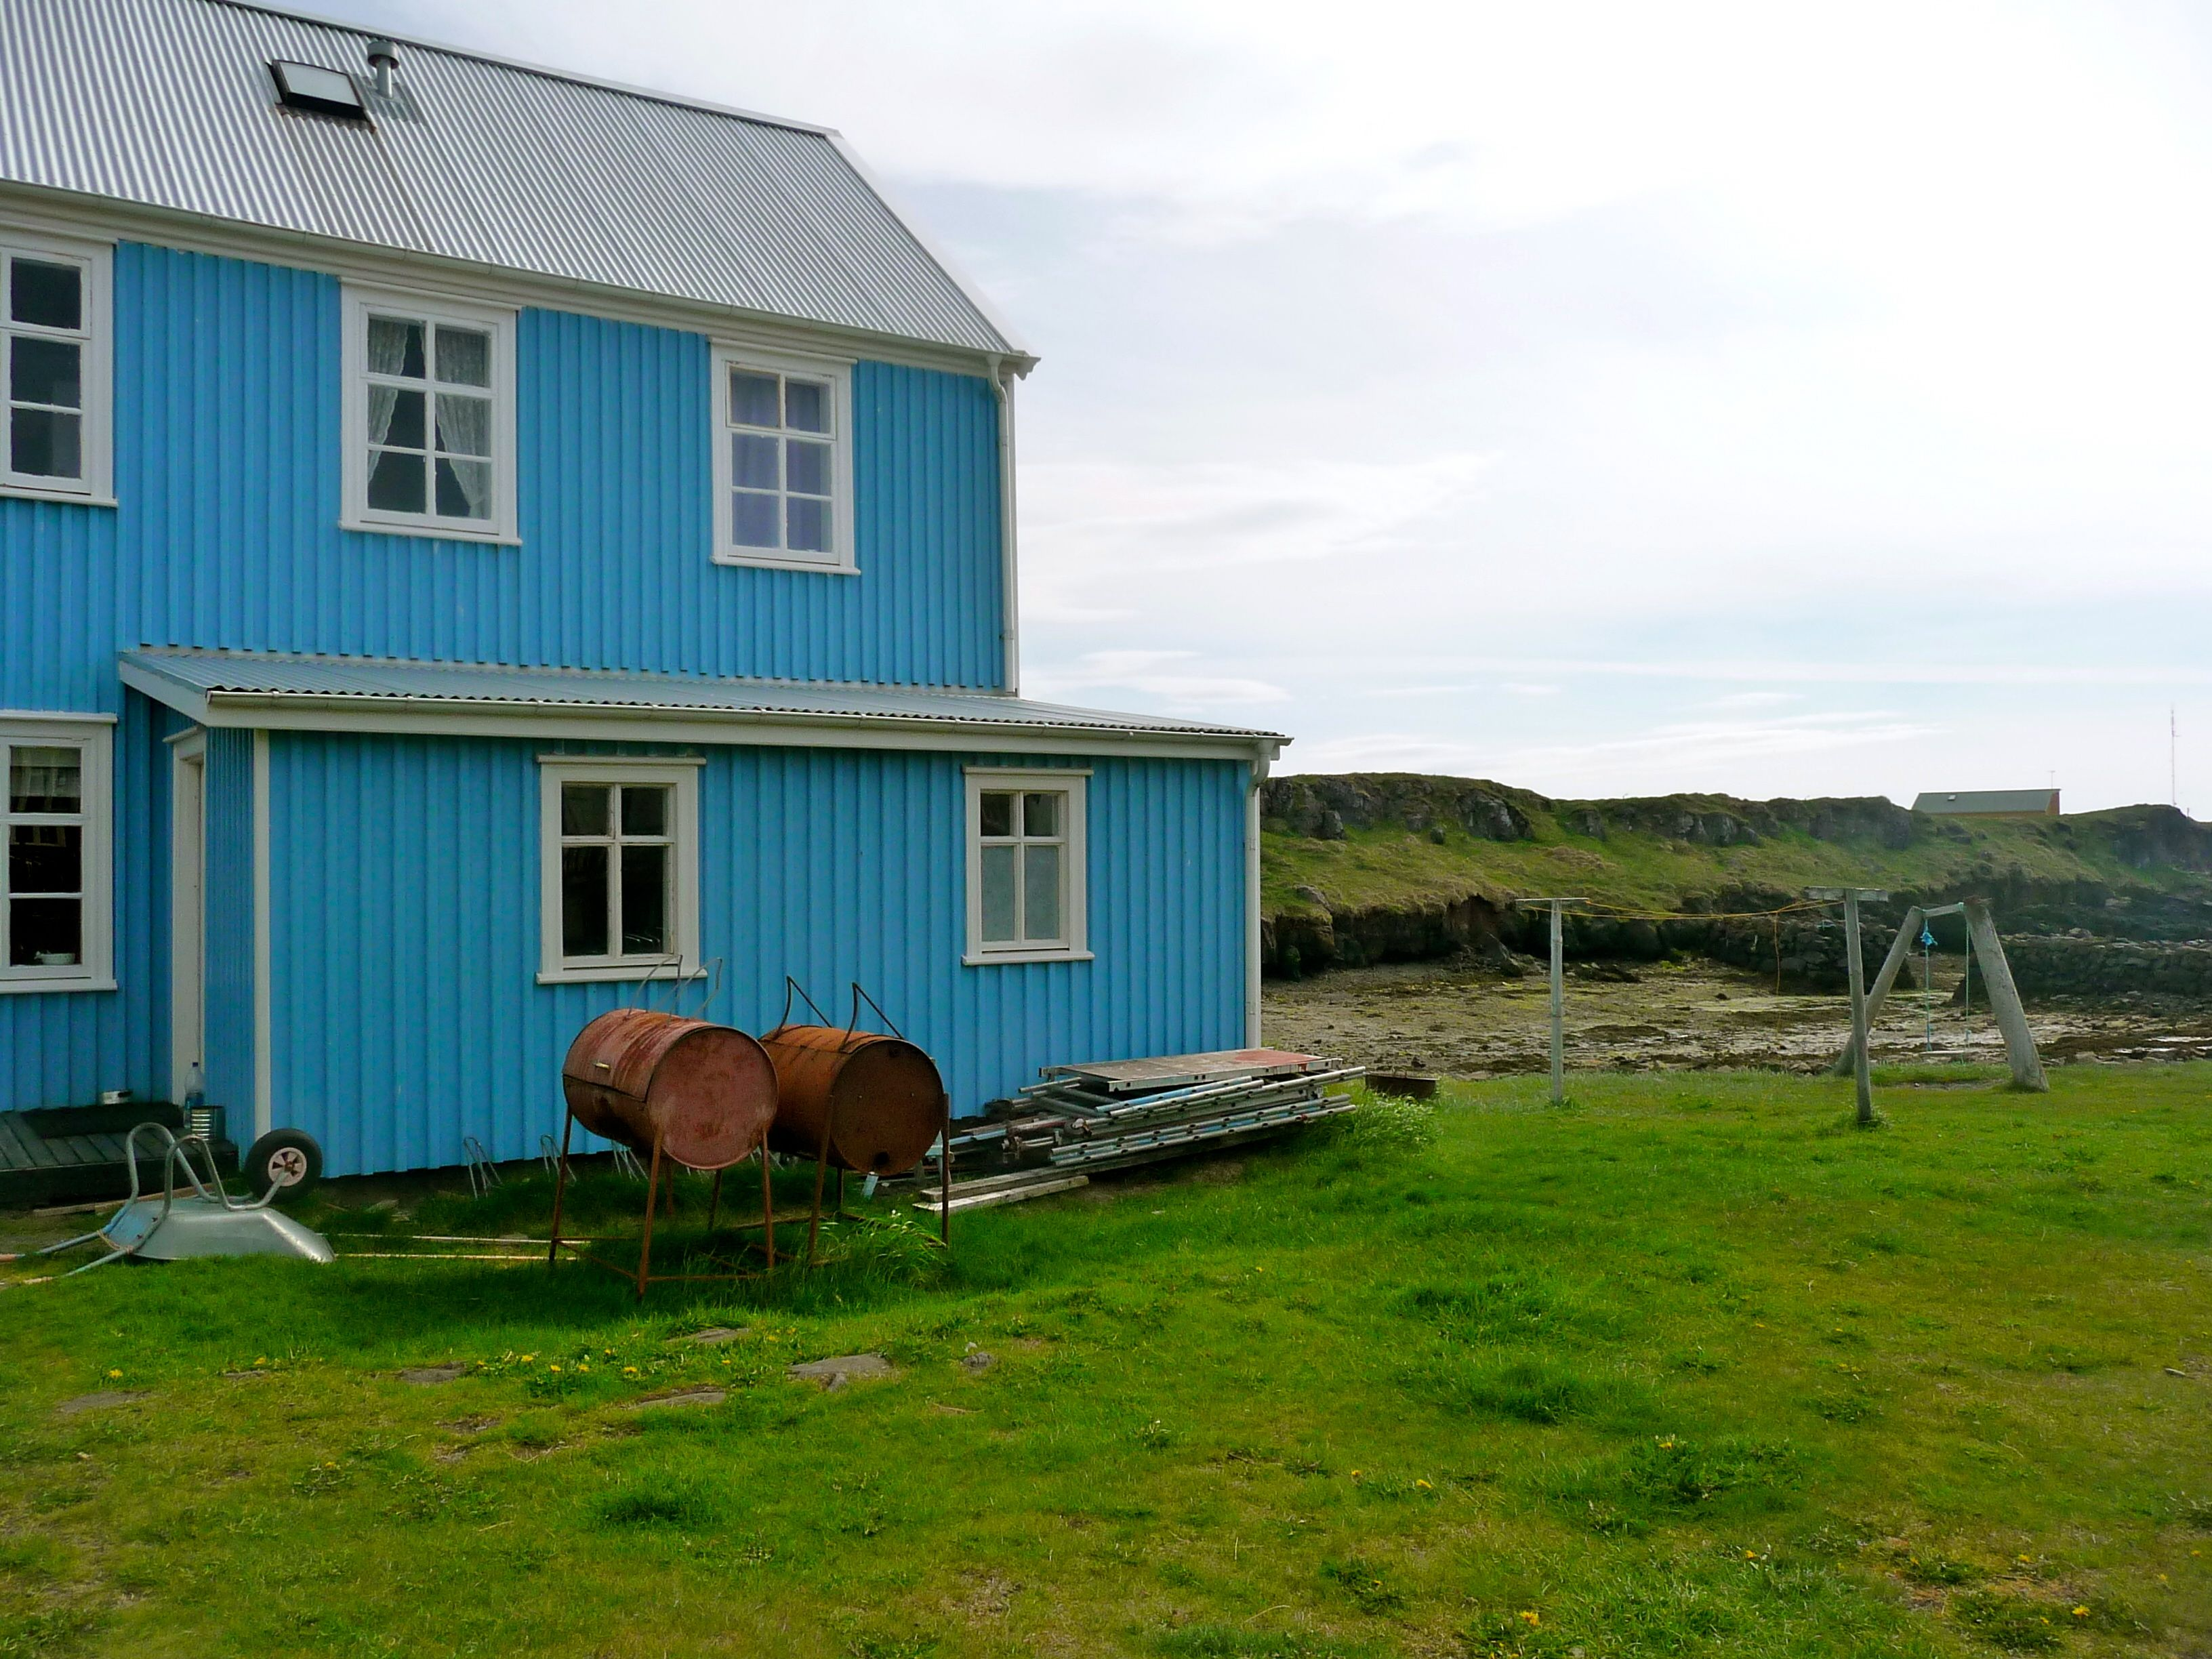 cottages work rentals luxembourg for rent flatshares iceland room lu a rooms to in exchange spare